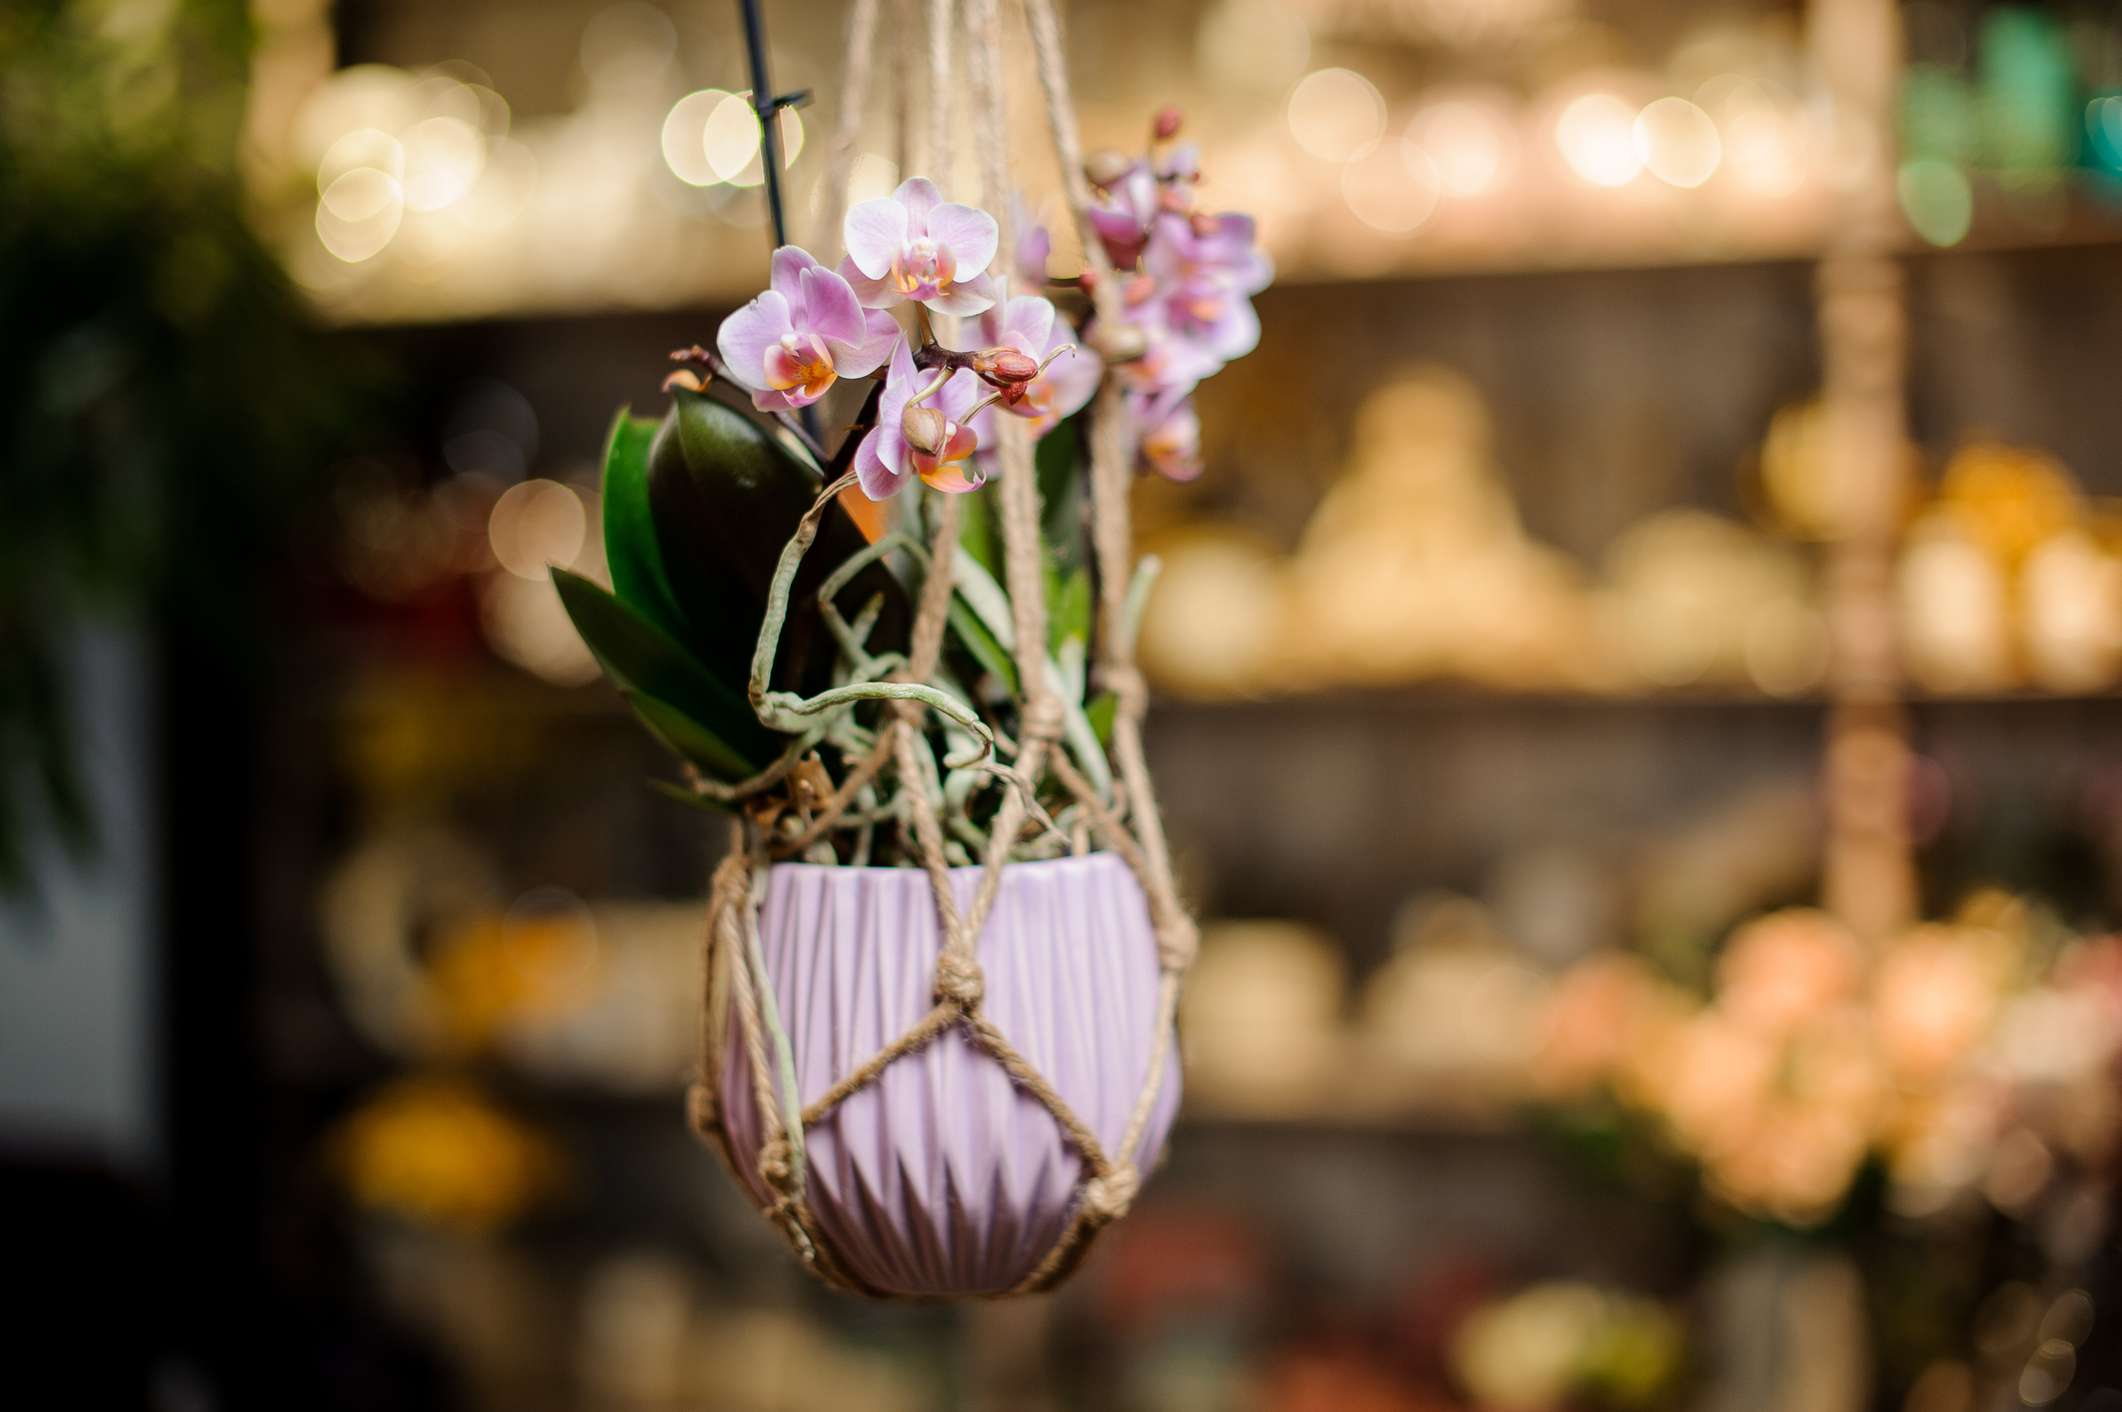 phalaenopsis orchid in bloom hanging from a macrame hanger.